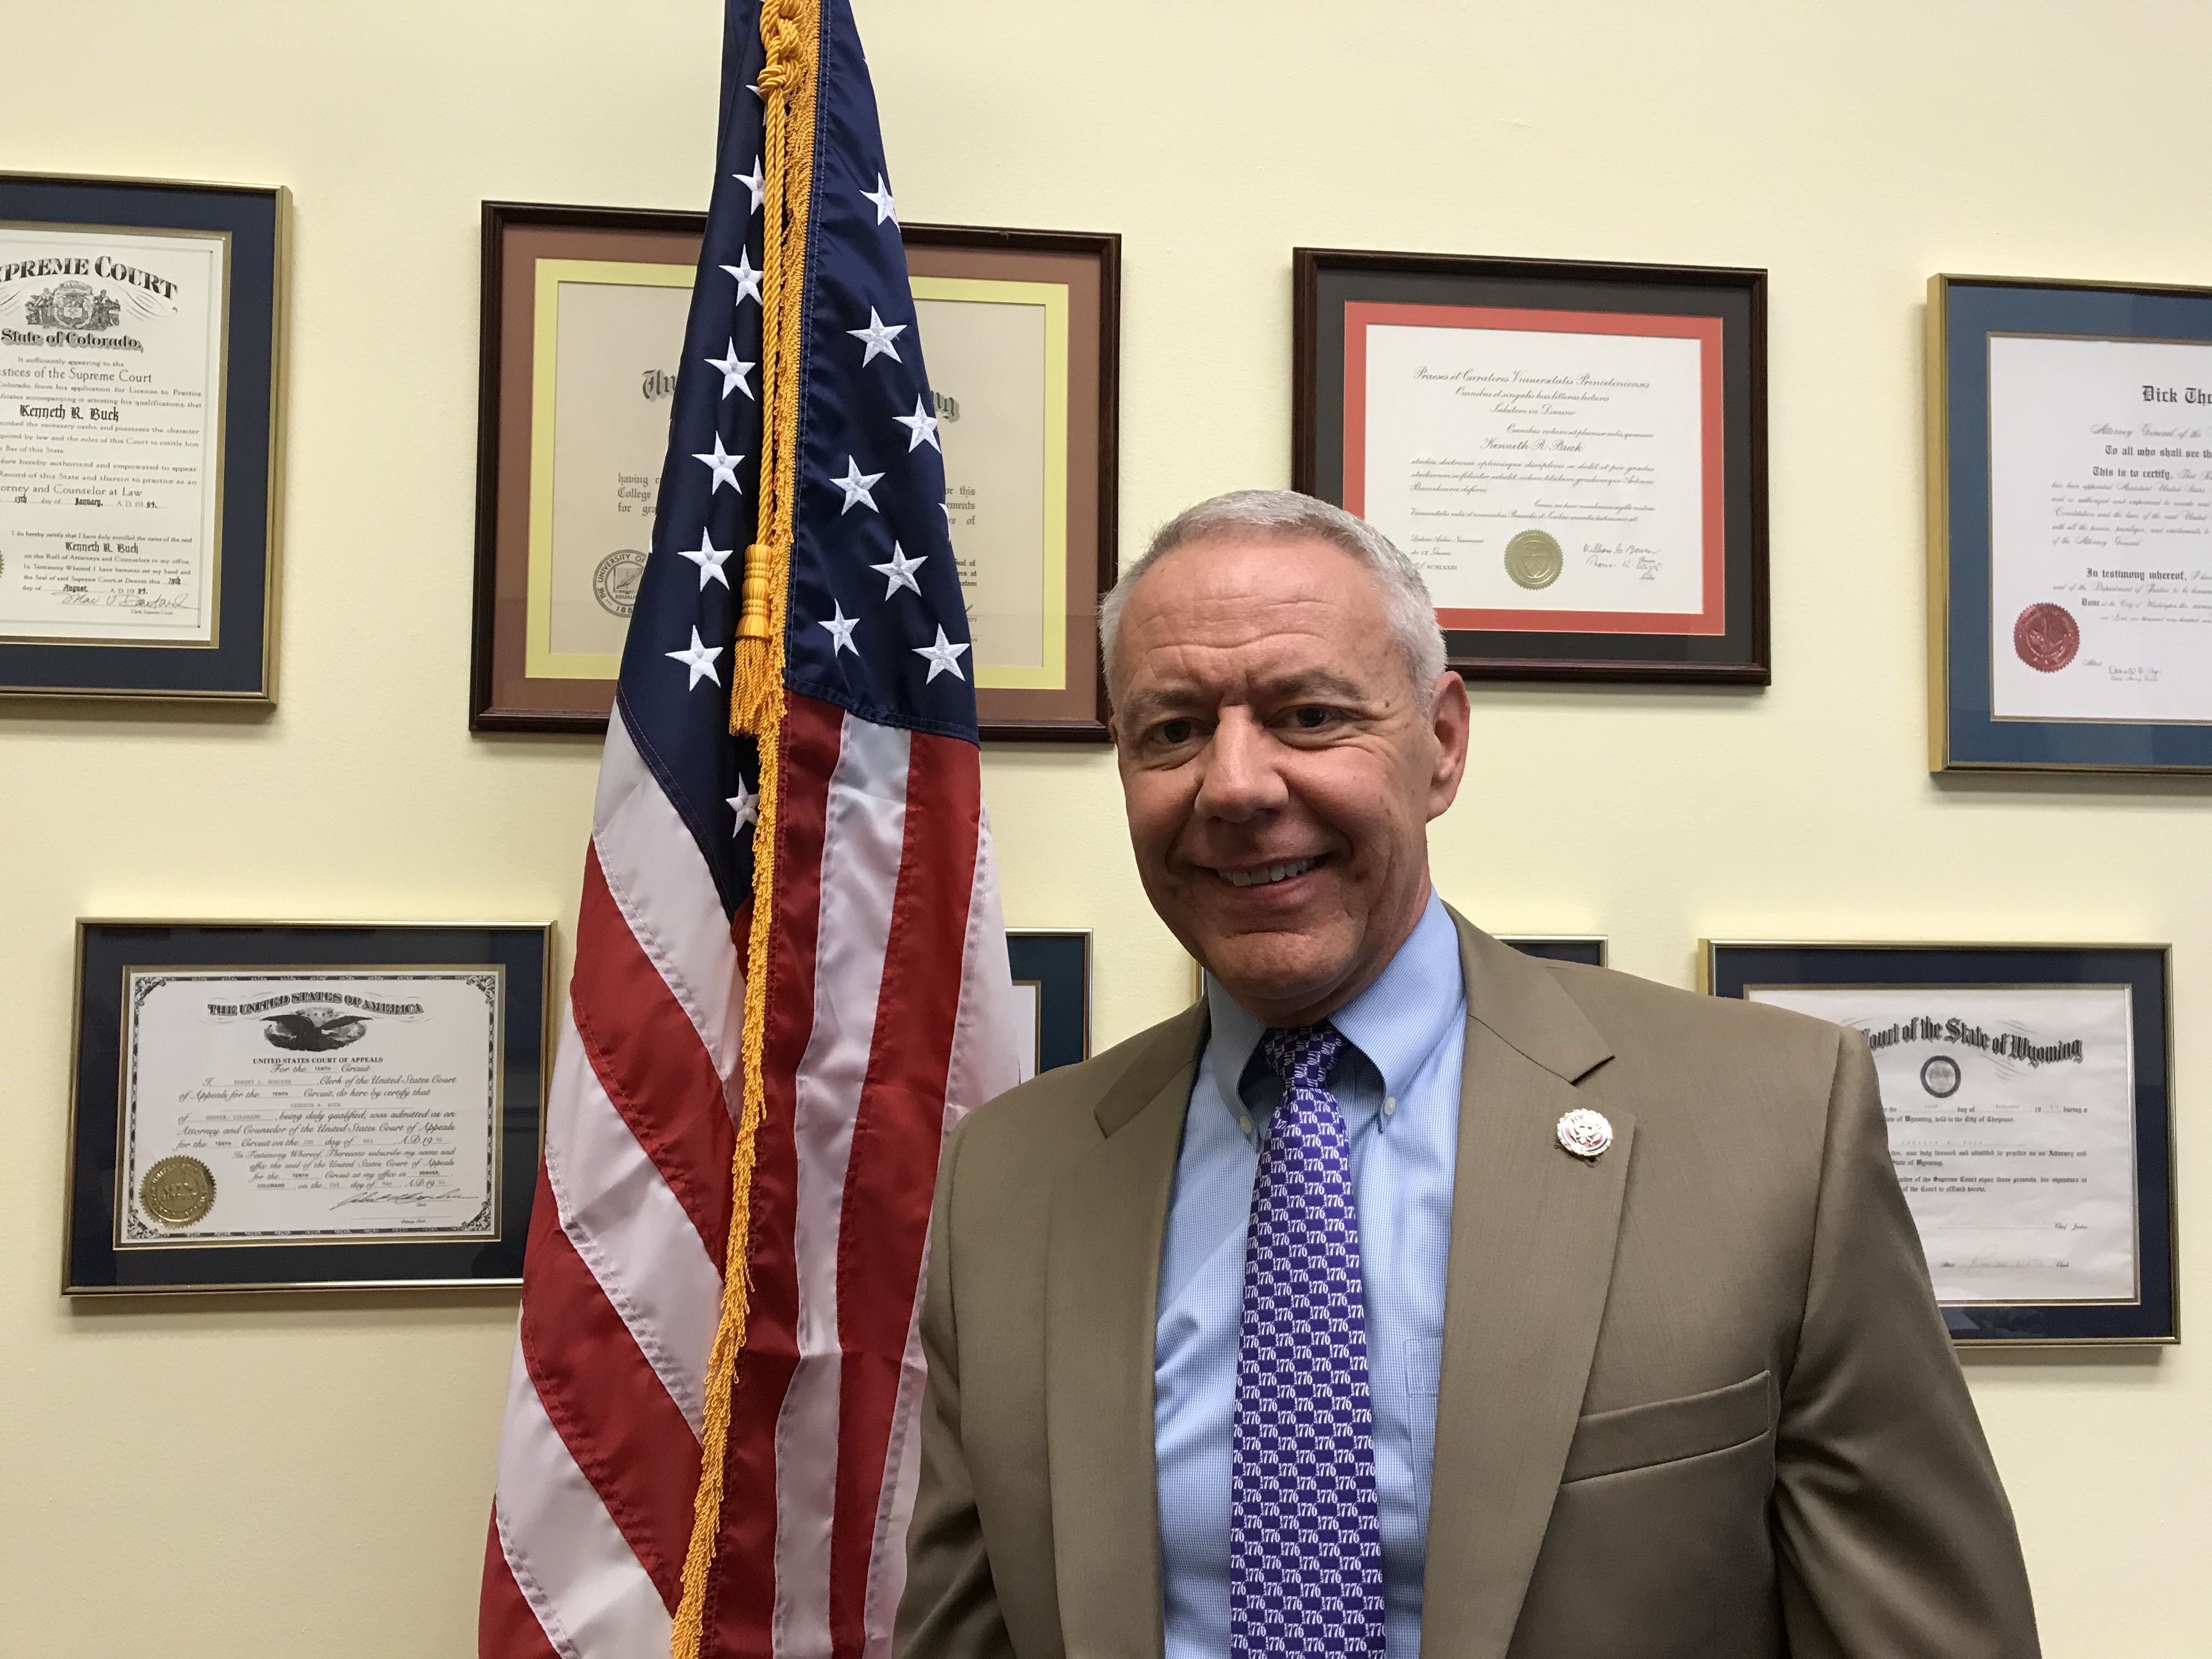 Republican Rep. Ken Buck in his Washington, D.C. office on October 17, 2019.